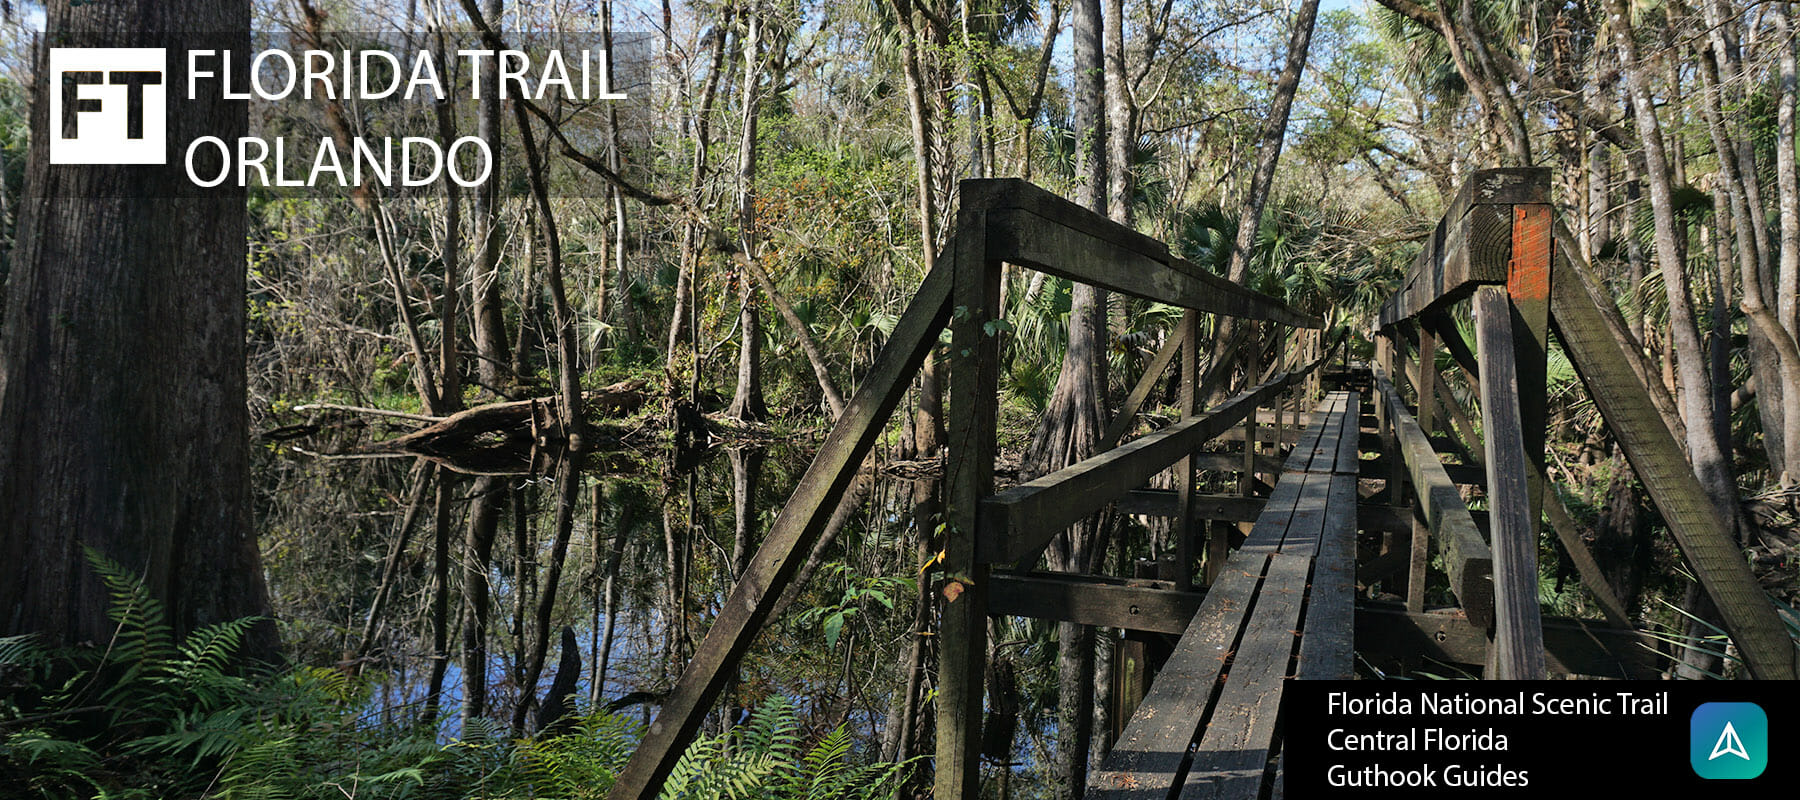 Florida Trail, Orlando